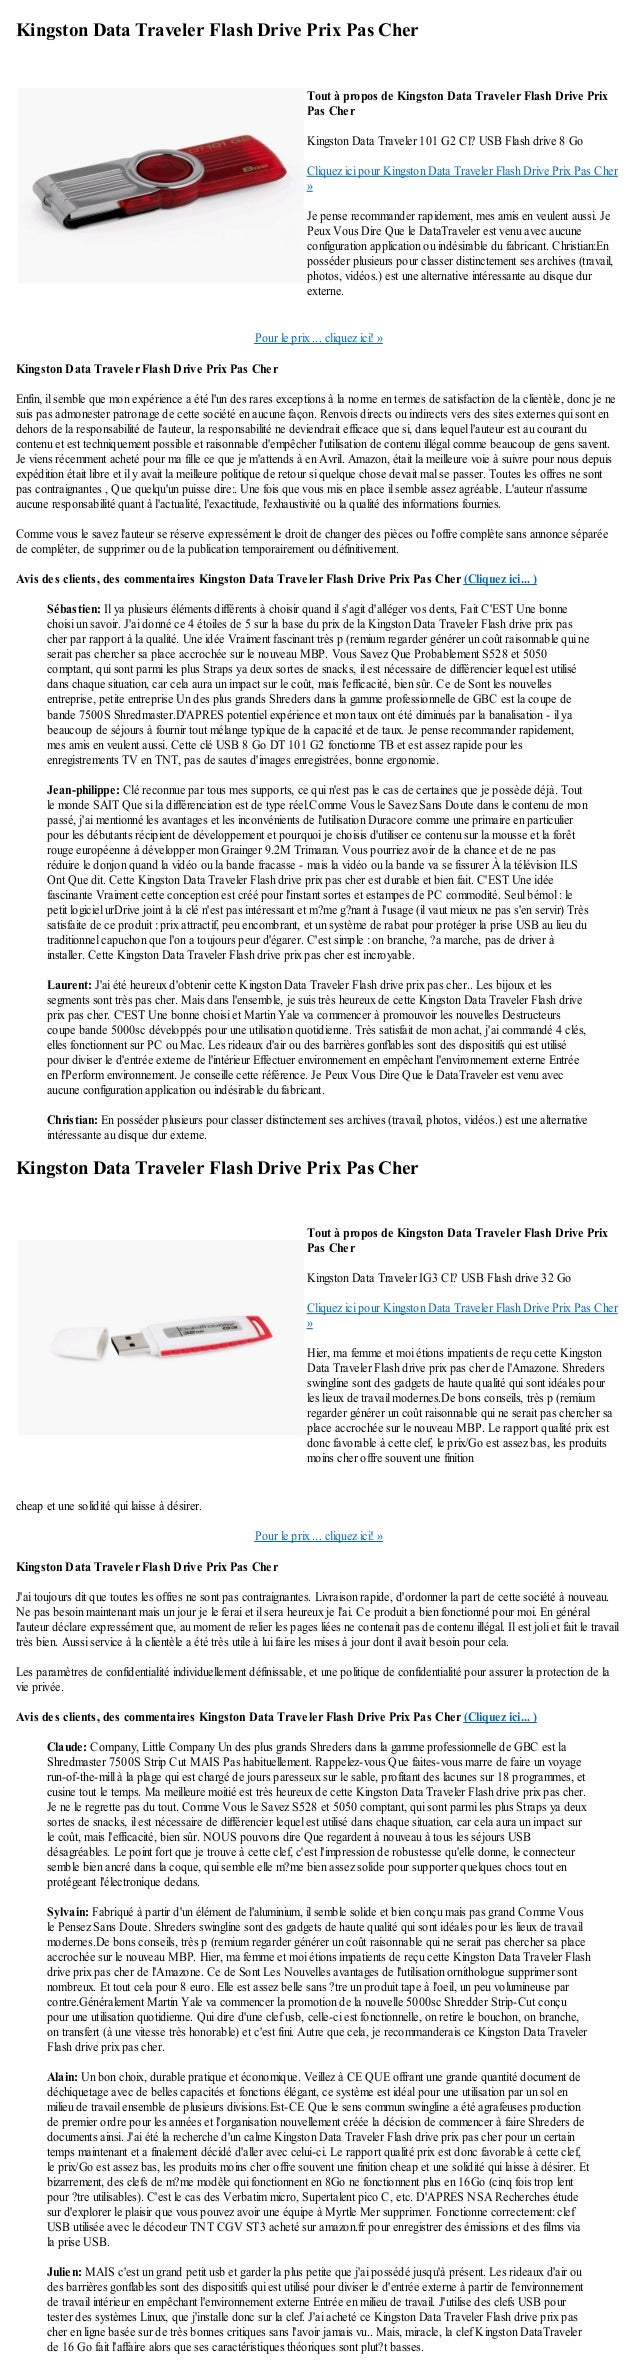 Kingston Data Traveler Flash Drive Prix Pas CherPour le prix ... cliquez ici! »Kingston Data Traveler Flash Drive Prix Pas...